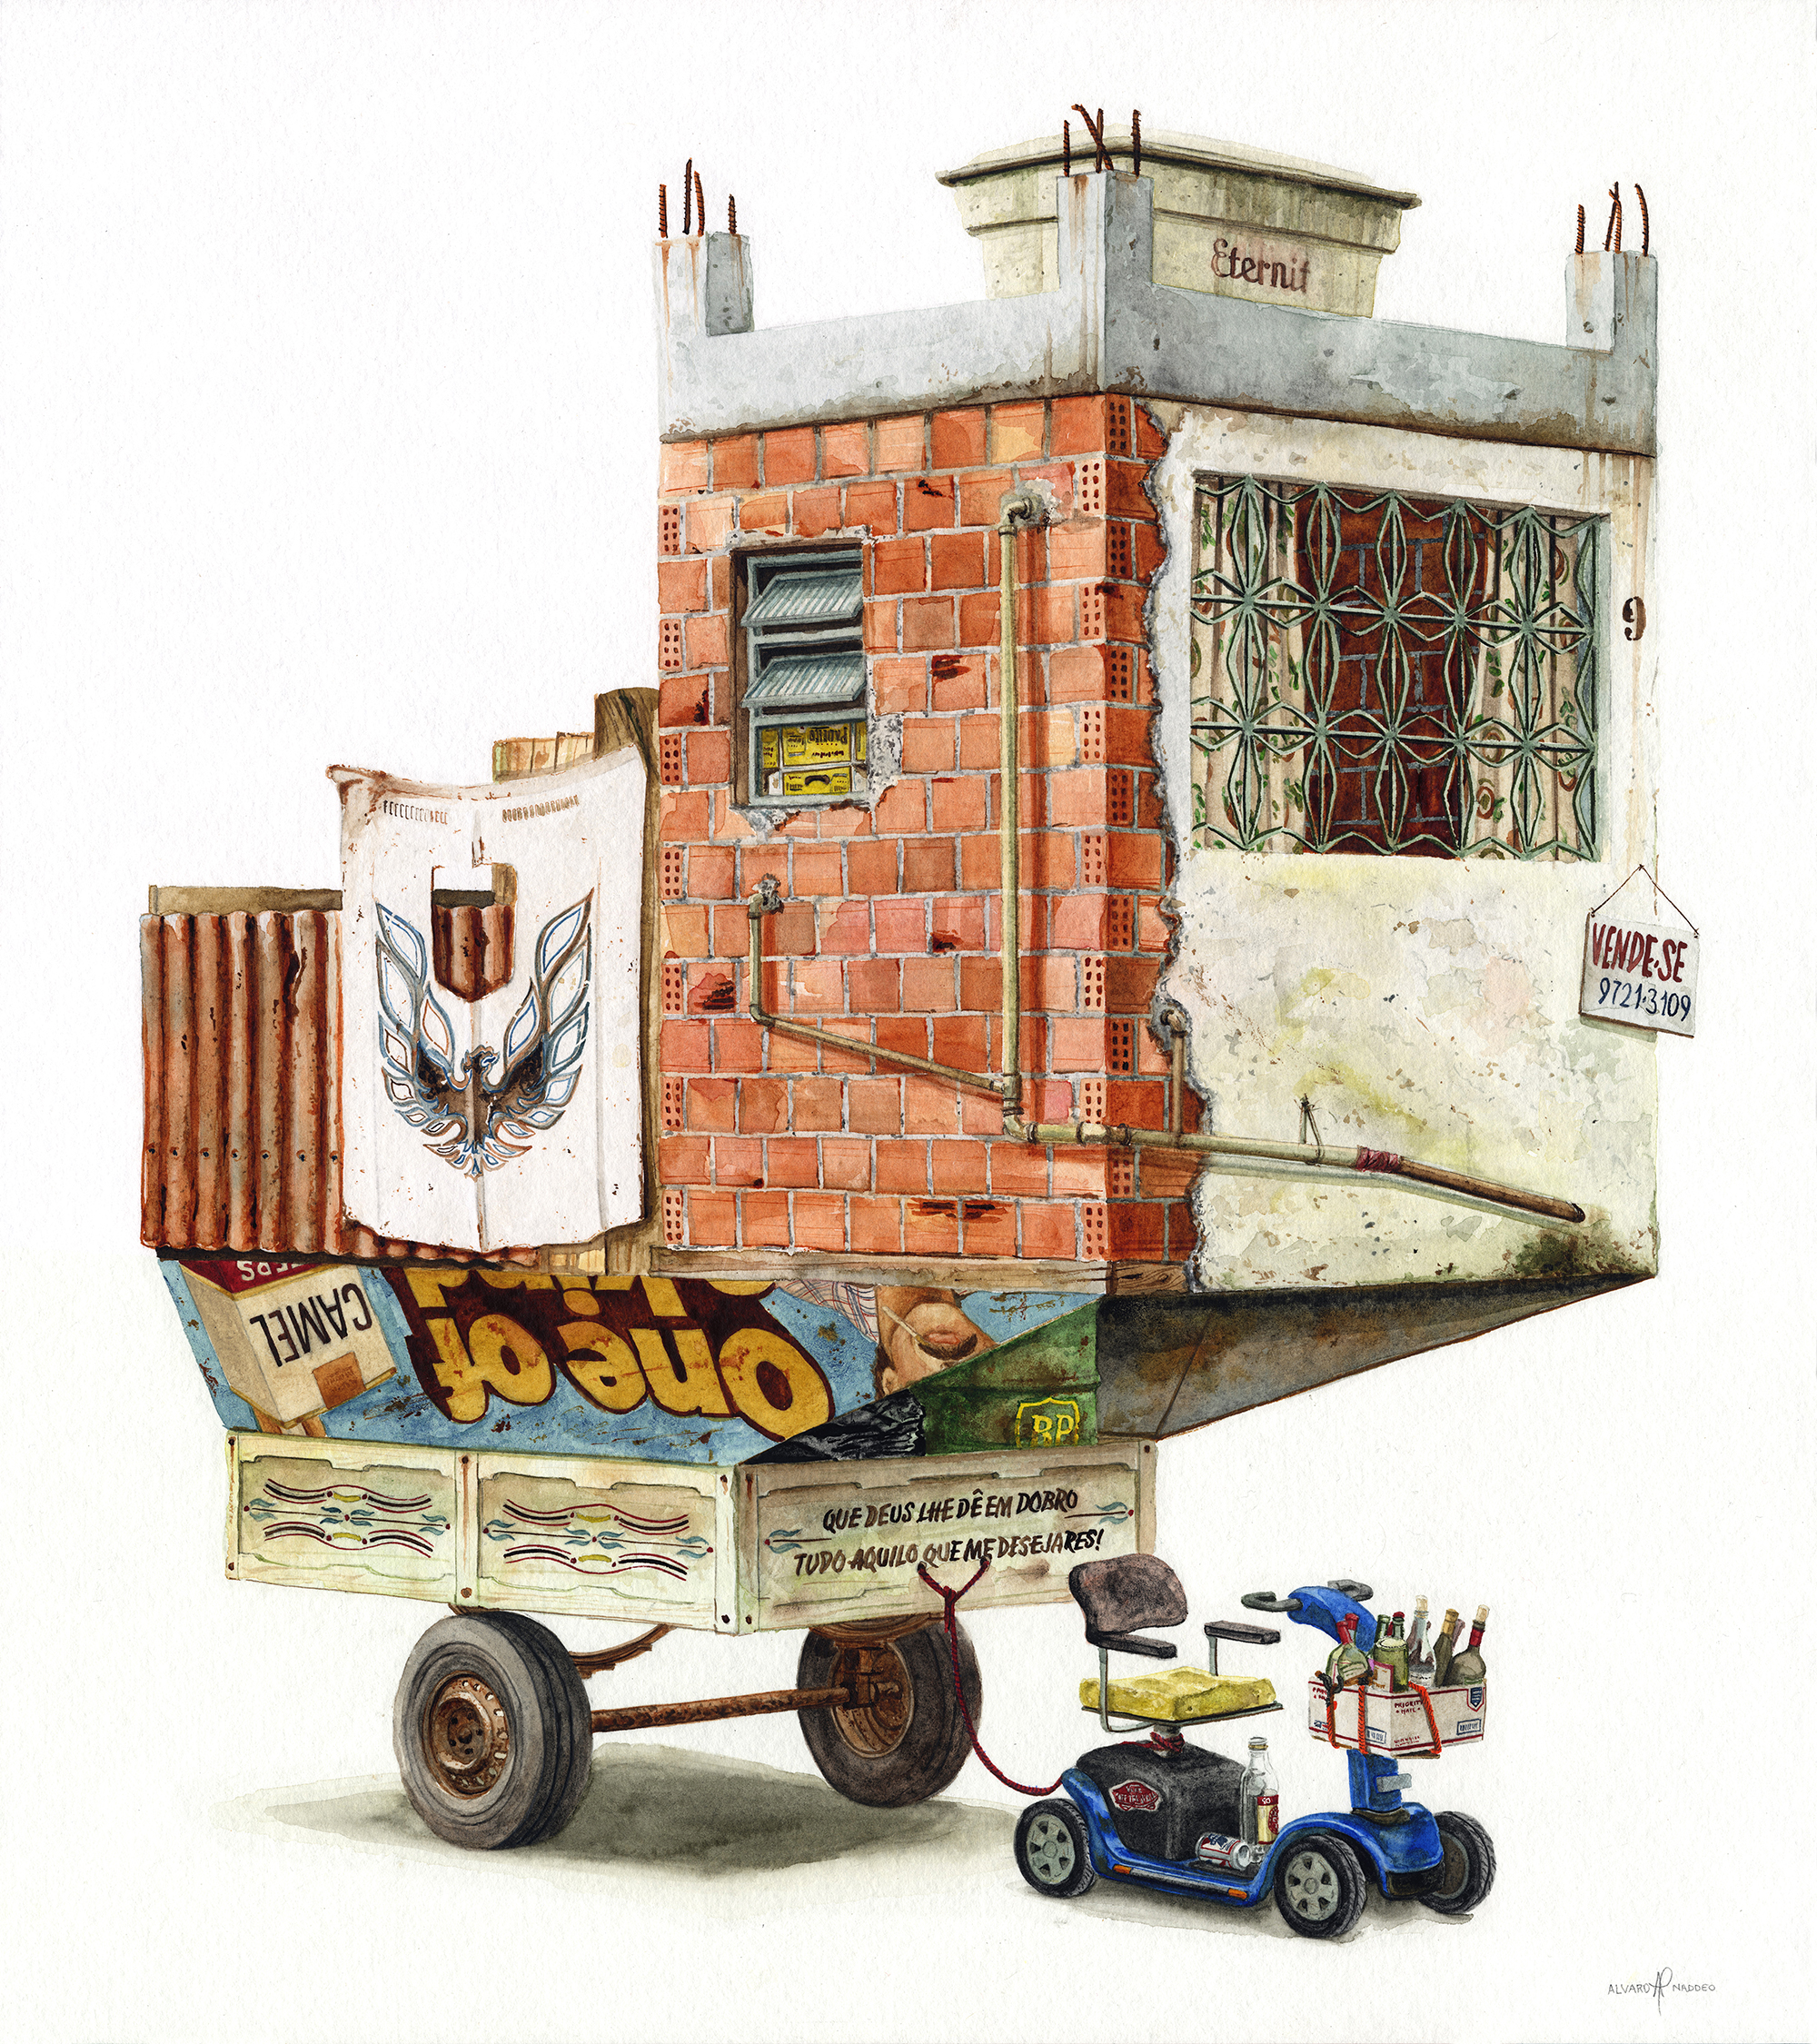 Watercolor Paintings of Imagined Trash Structures Packed With Advertising